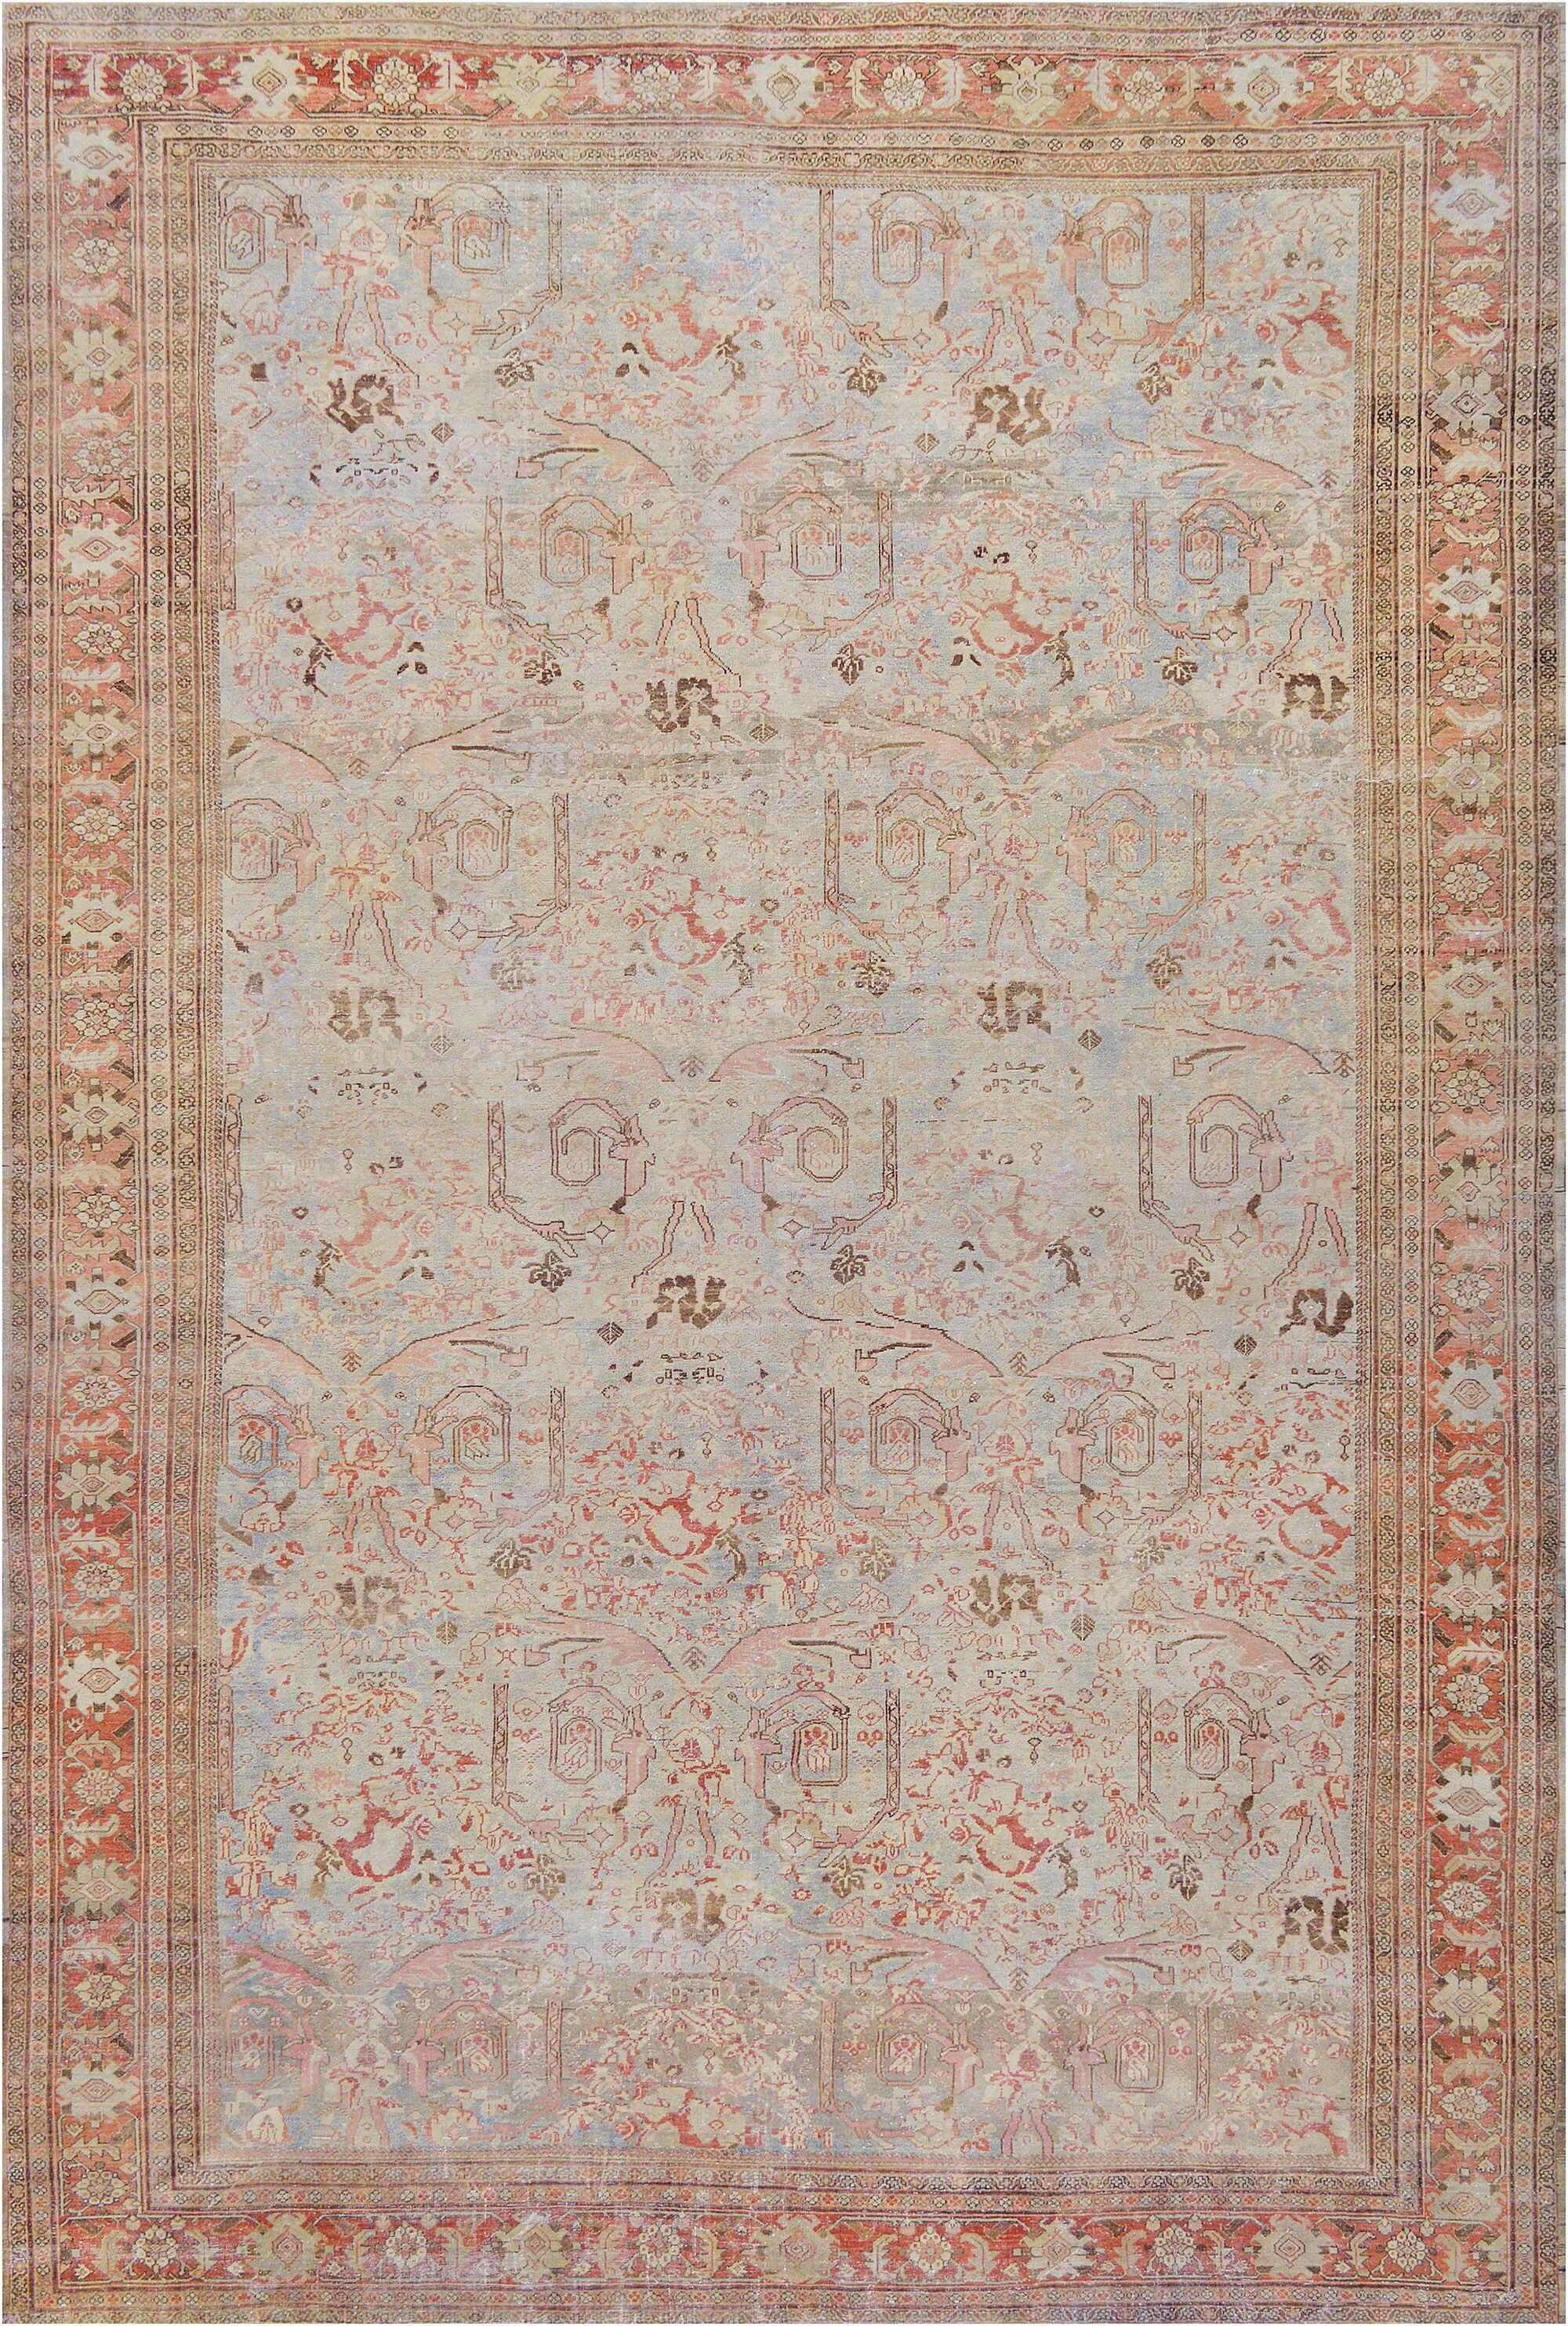 One-of-a-Kind Antique Sultanabad Handwoven Wool Pale Blue Indoor Area Rug